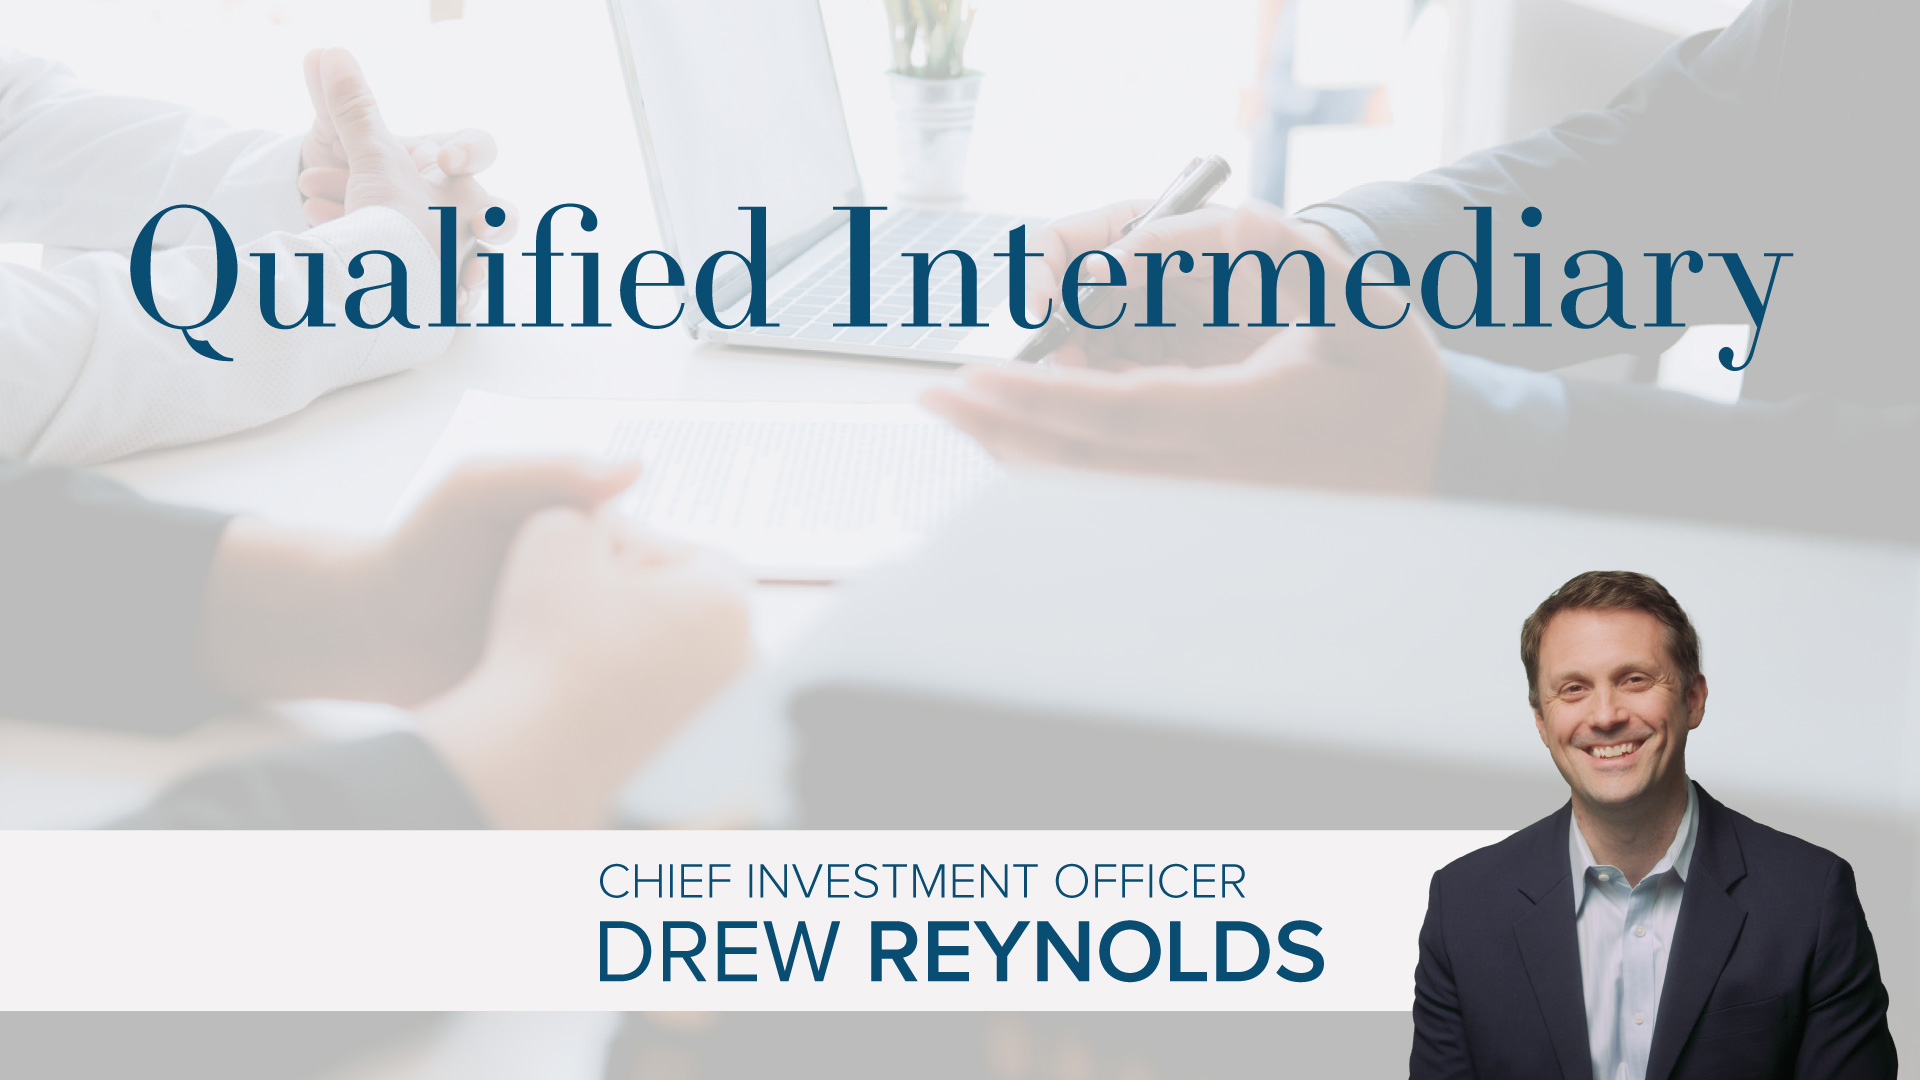 Qualified Intermediary: Do I Need One For A 1031 Exchange?